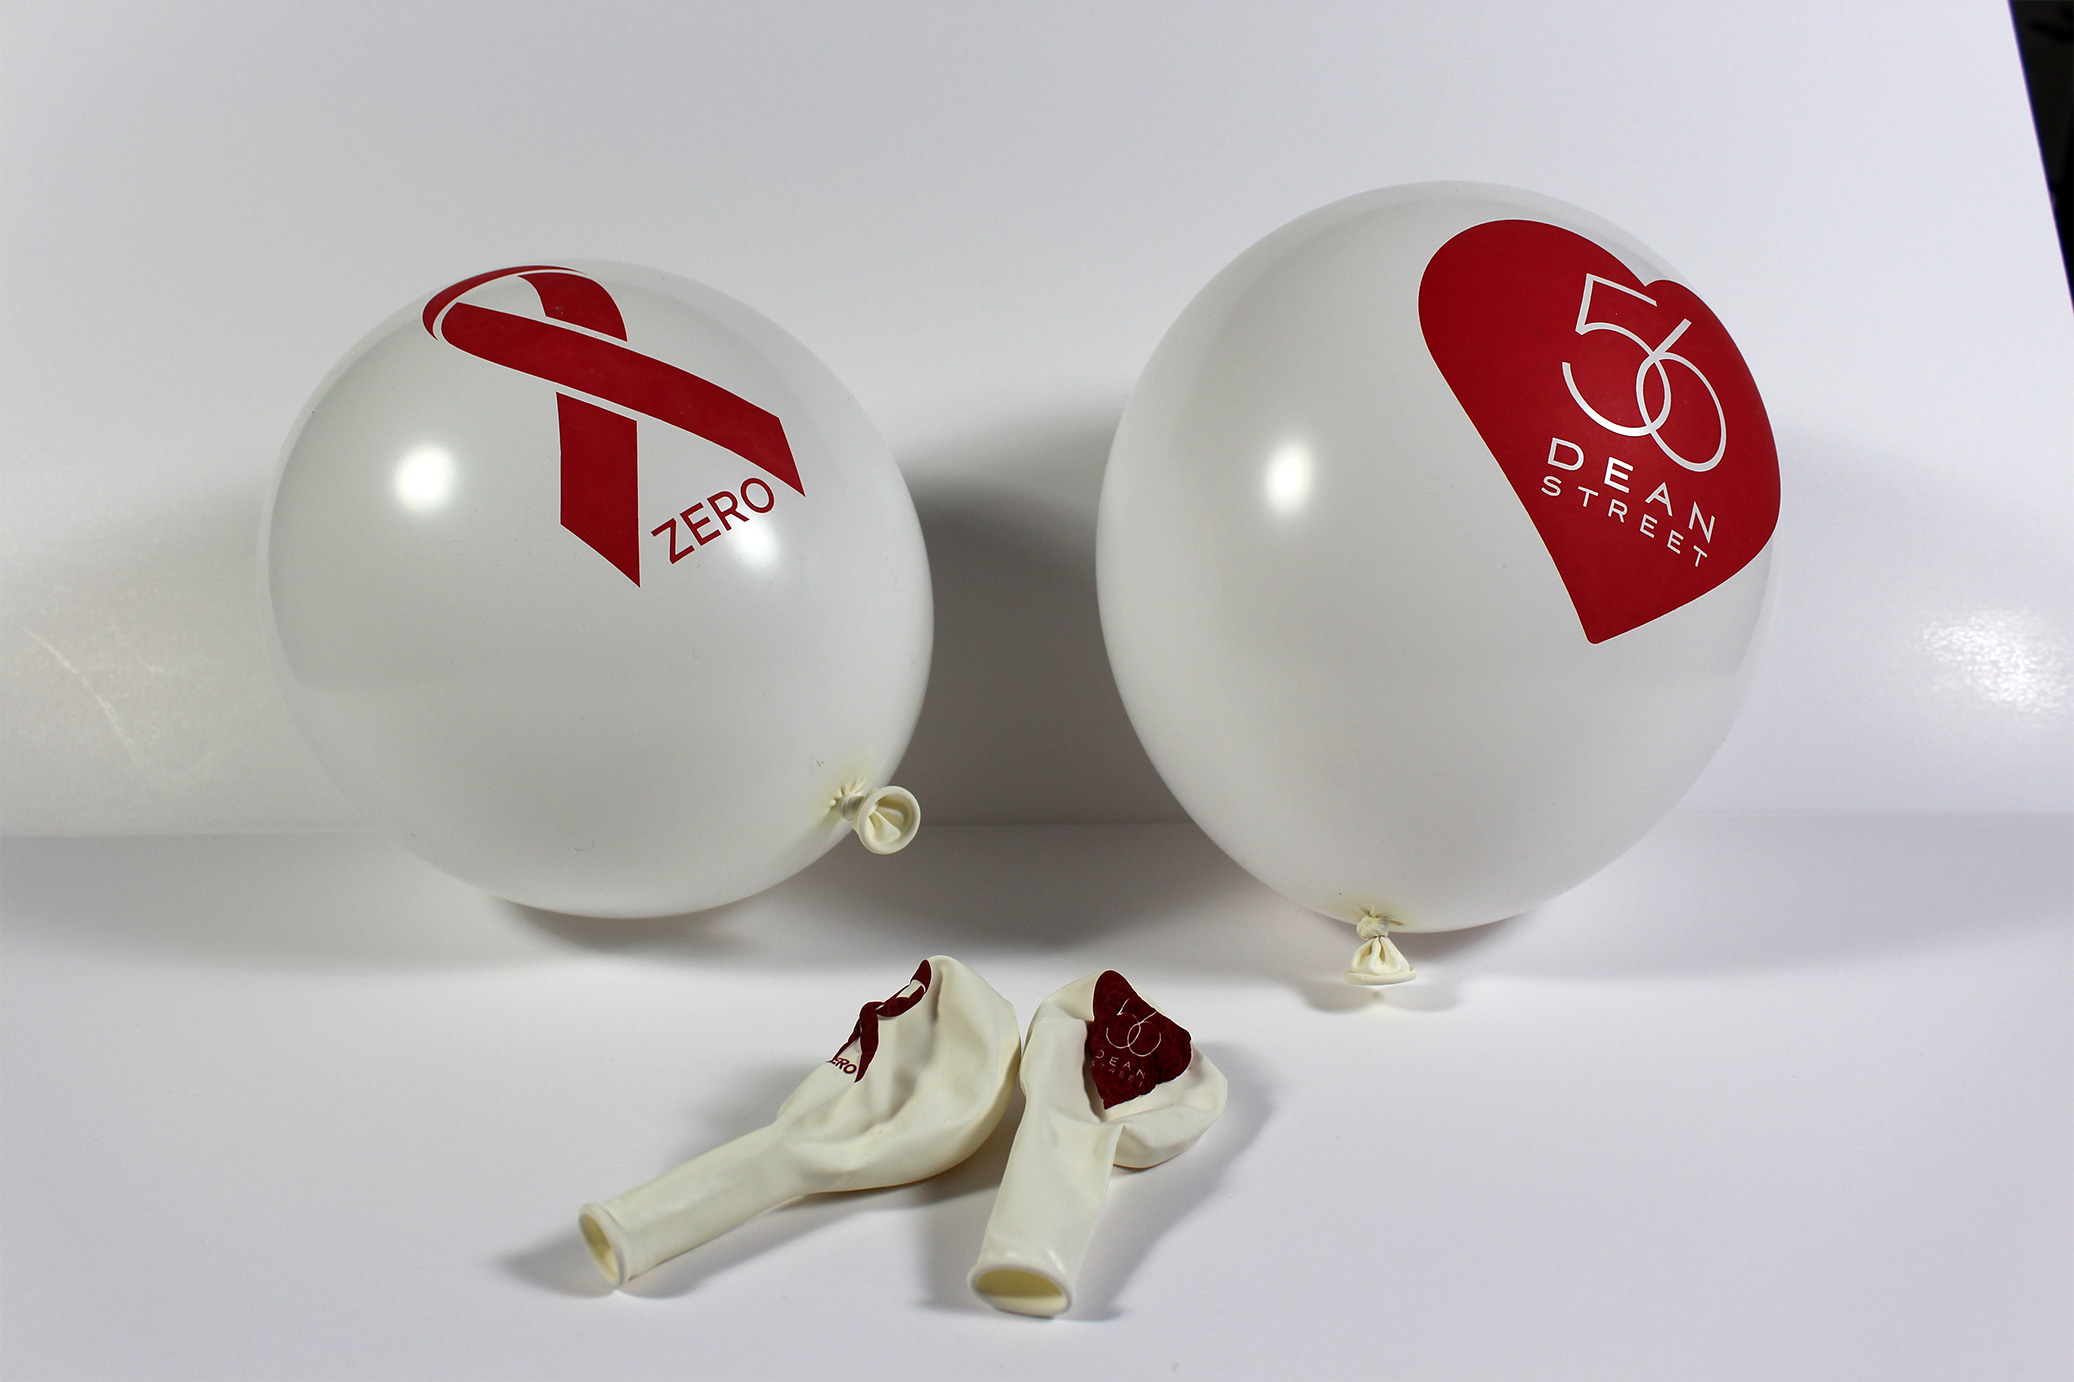 Four white balloons with red print, two inflated, two deflated for Dean Street